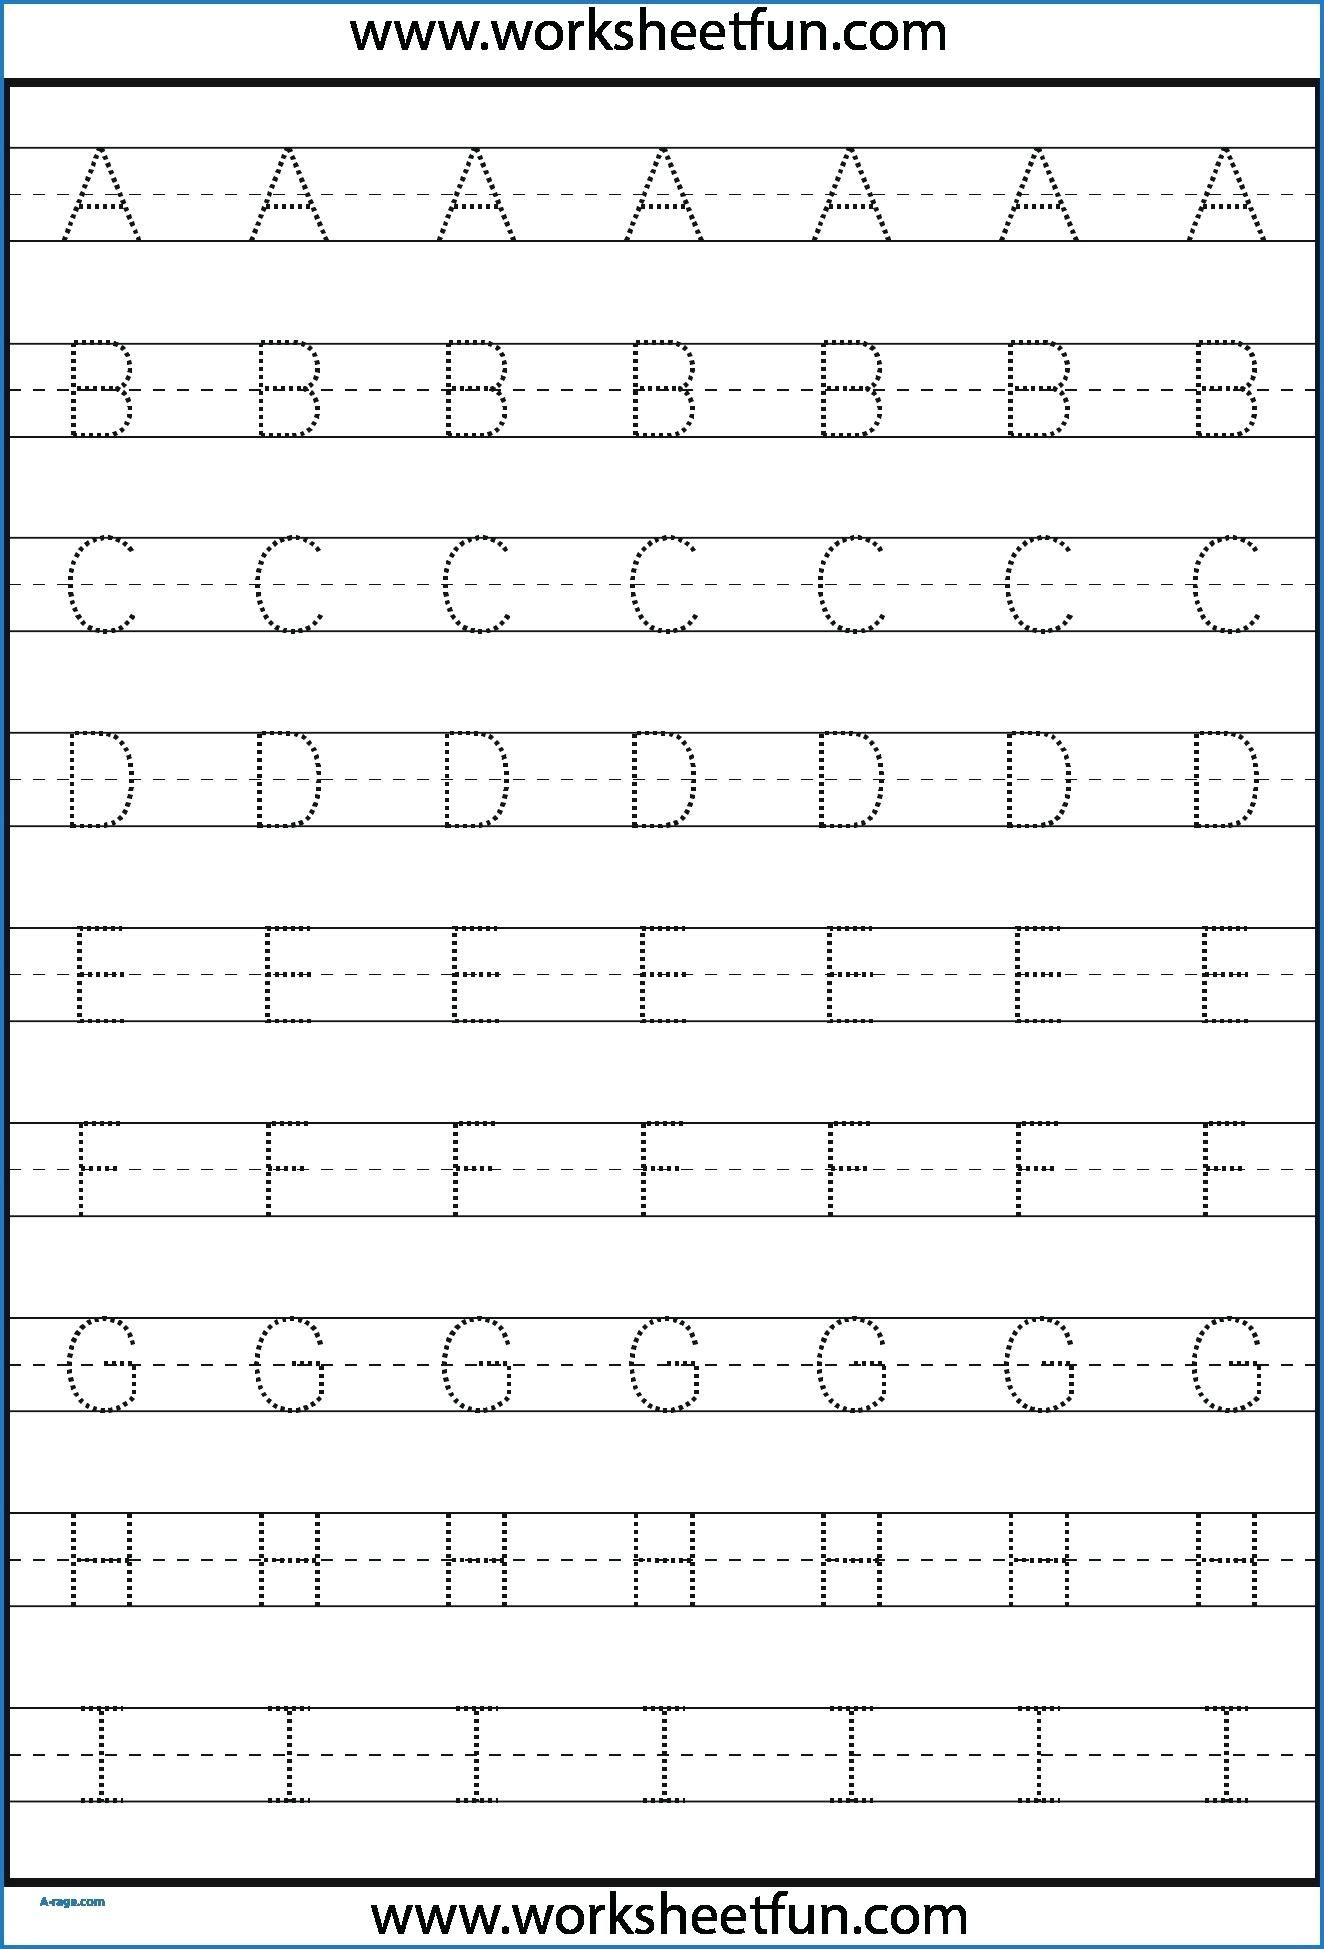 Kindergarten Letter Tracing Worksheets Pdf - Wallpaper Image for Letter Tracing Worksheets Pdf Free